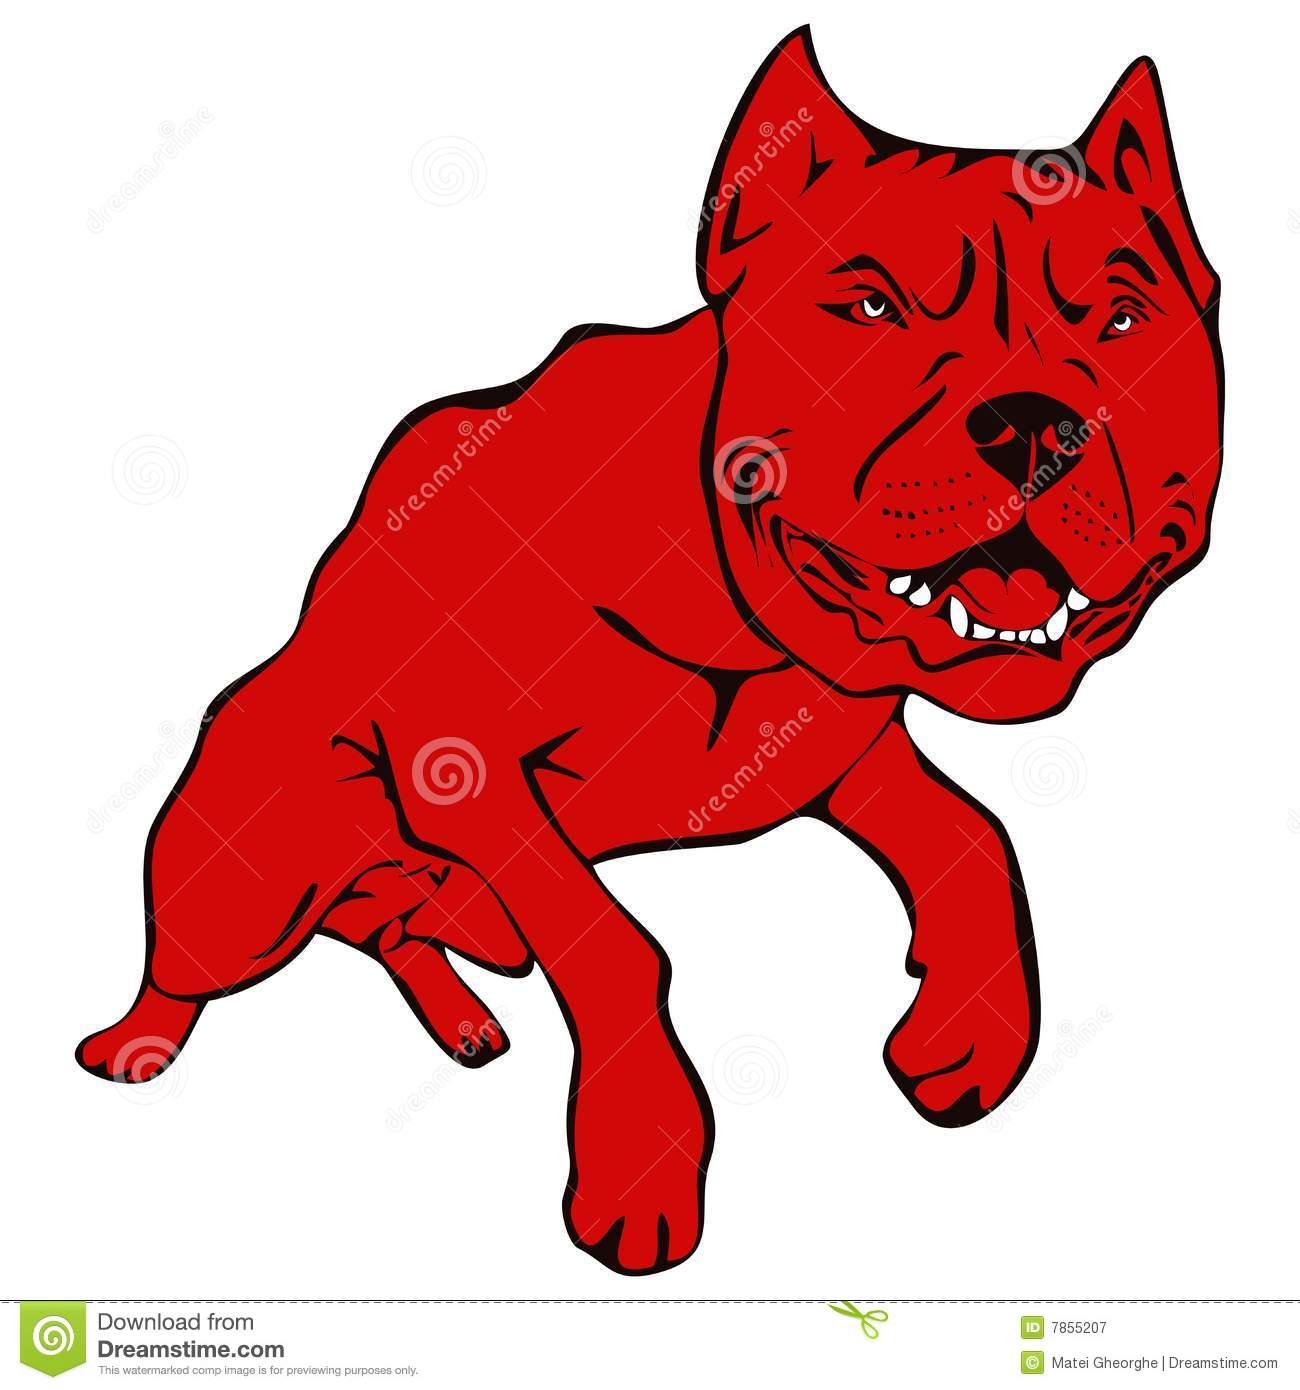 Dog American Pit Bull Terrier Illustration Royalty Free Stock ...